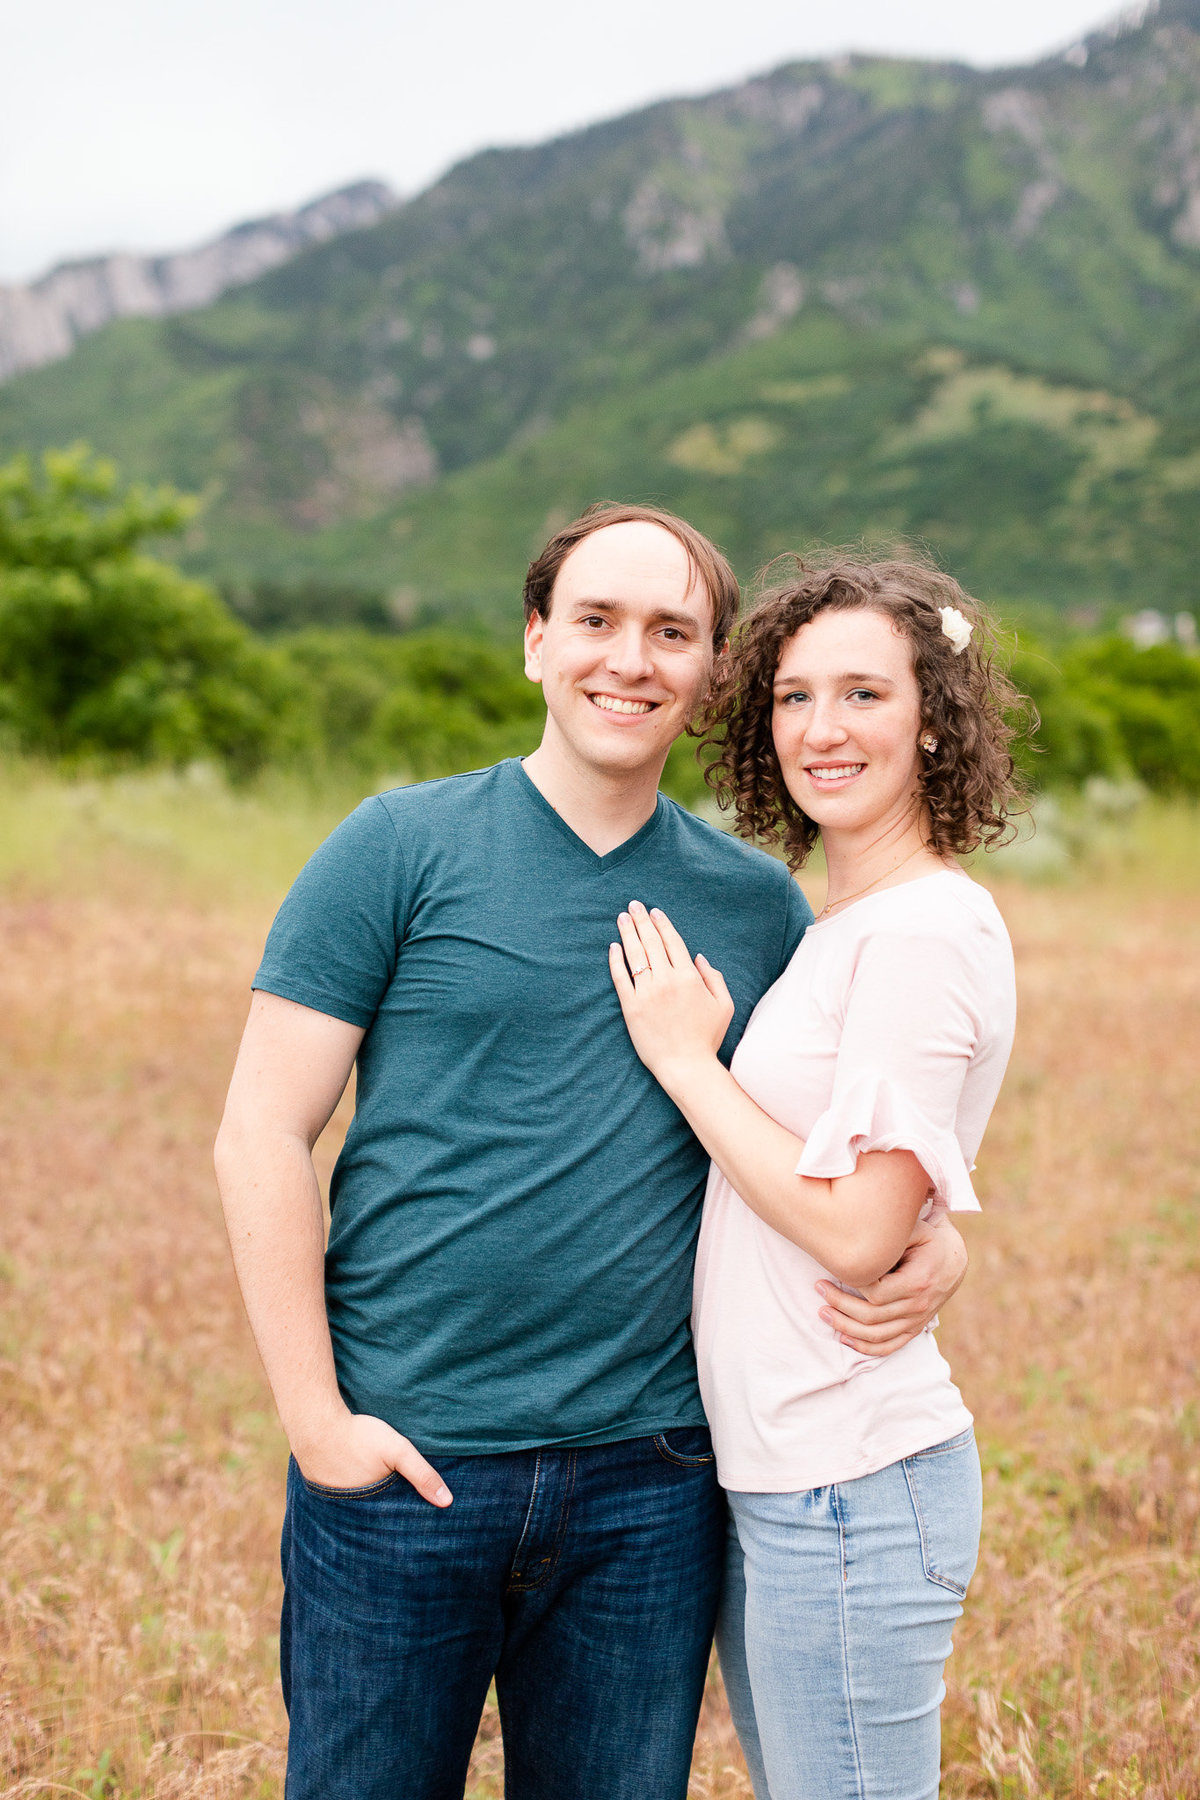 Engagement Session at Dimple Dell Regional Park-0004